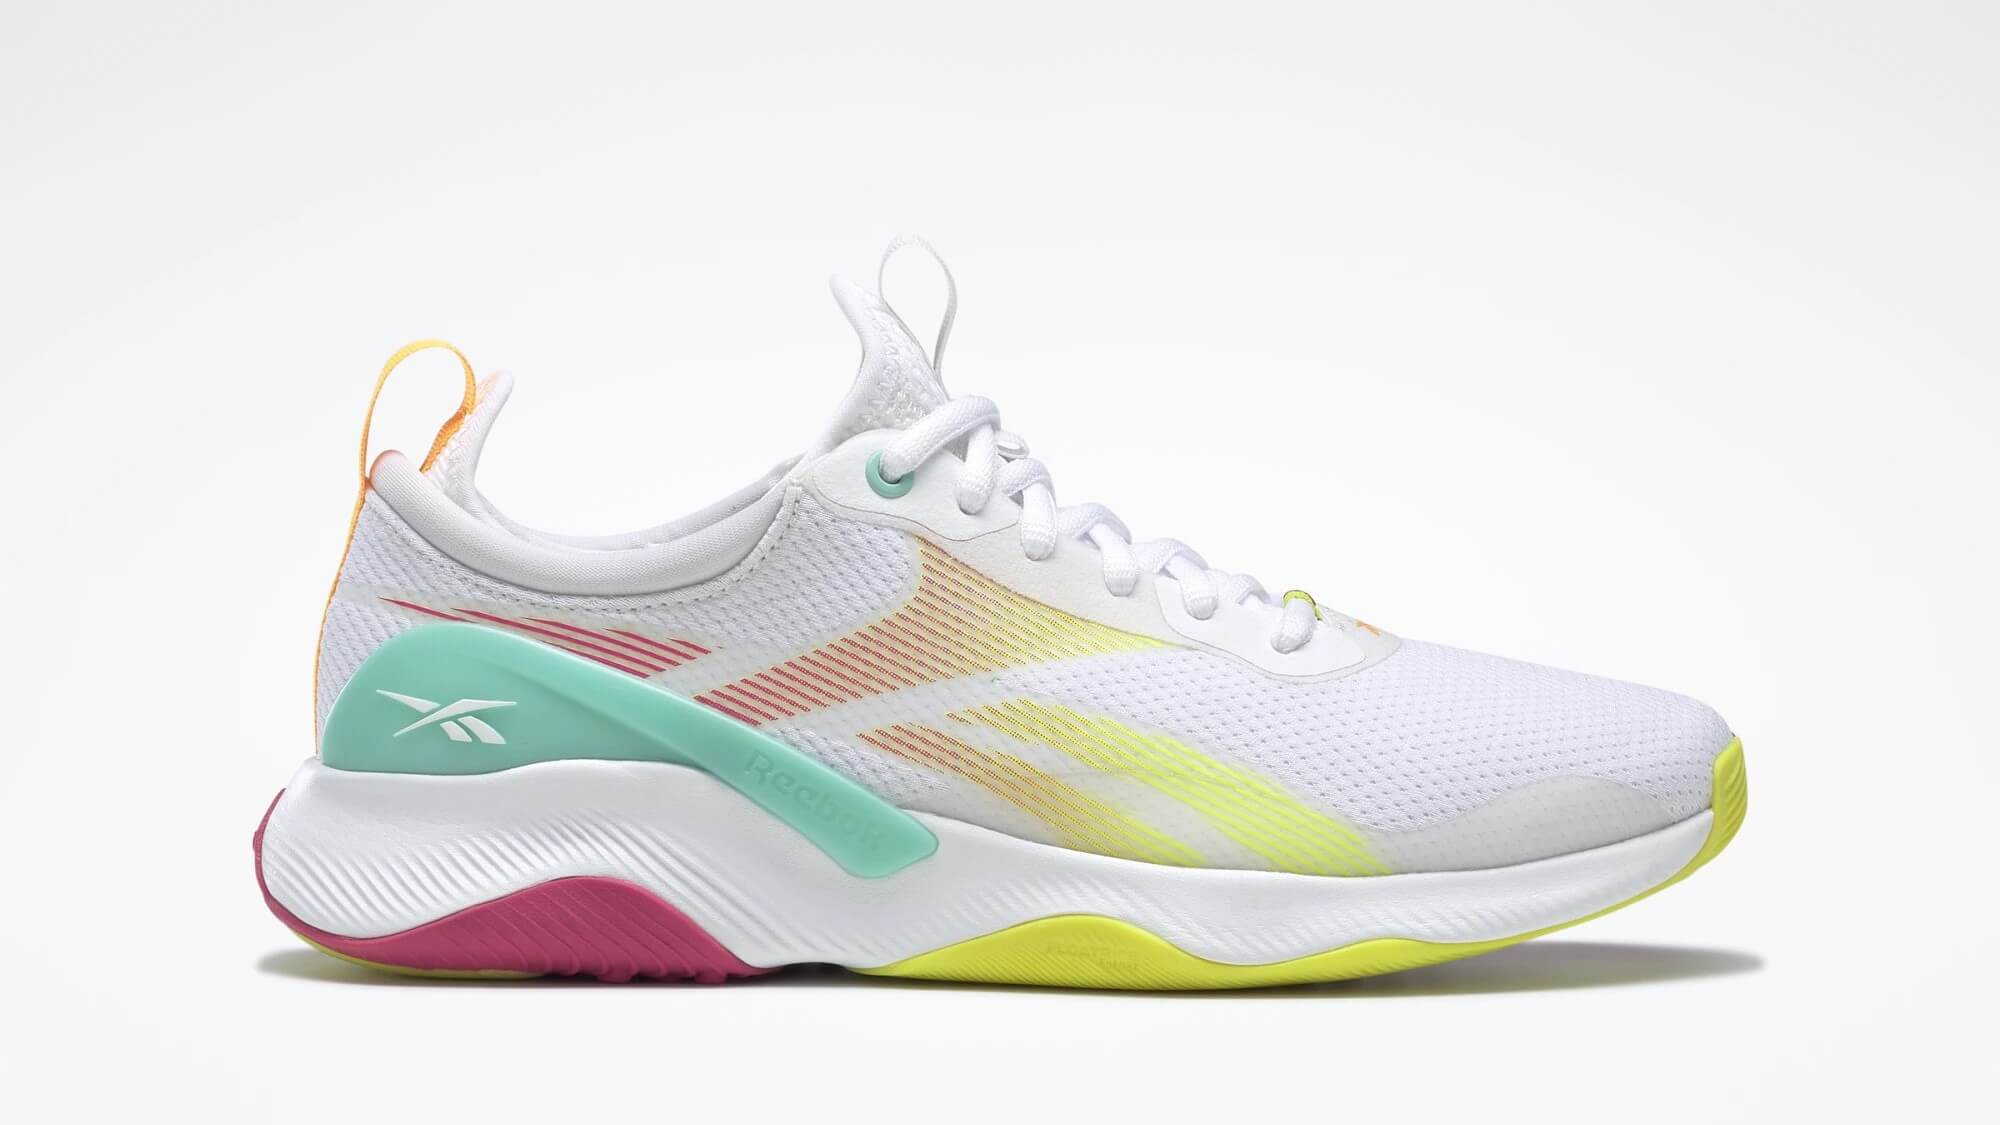 Reebok HIIT 2 Training shoes for zumba.